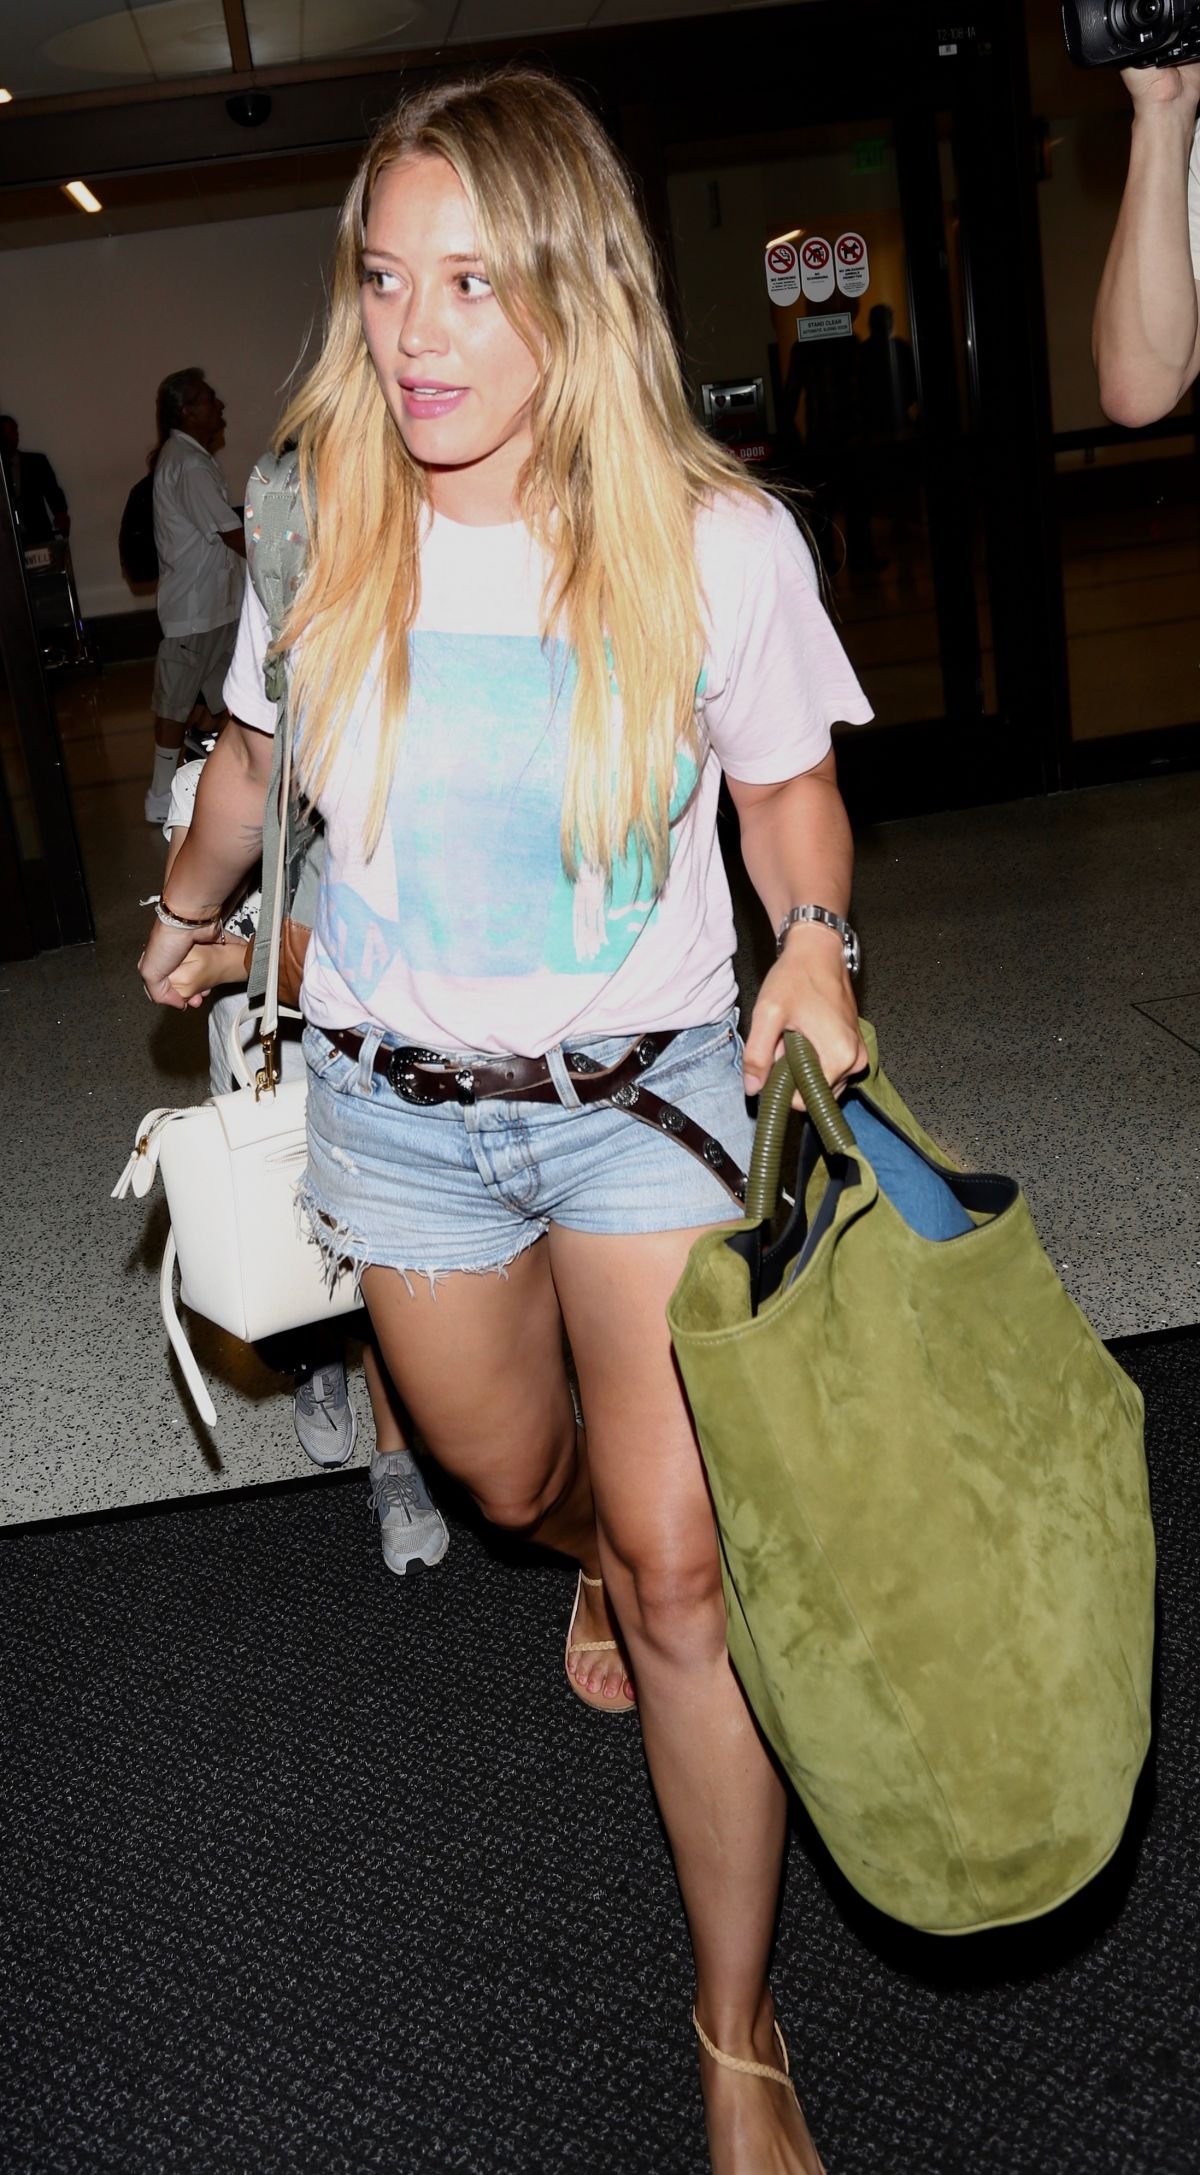 HILARY DUFF at LAX Airport in Los Angeles 08/14/2017